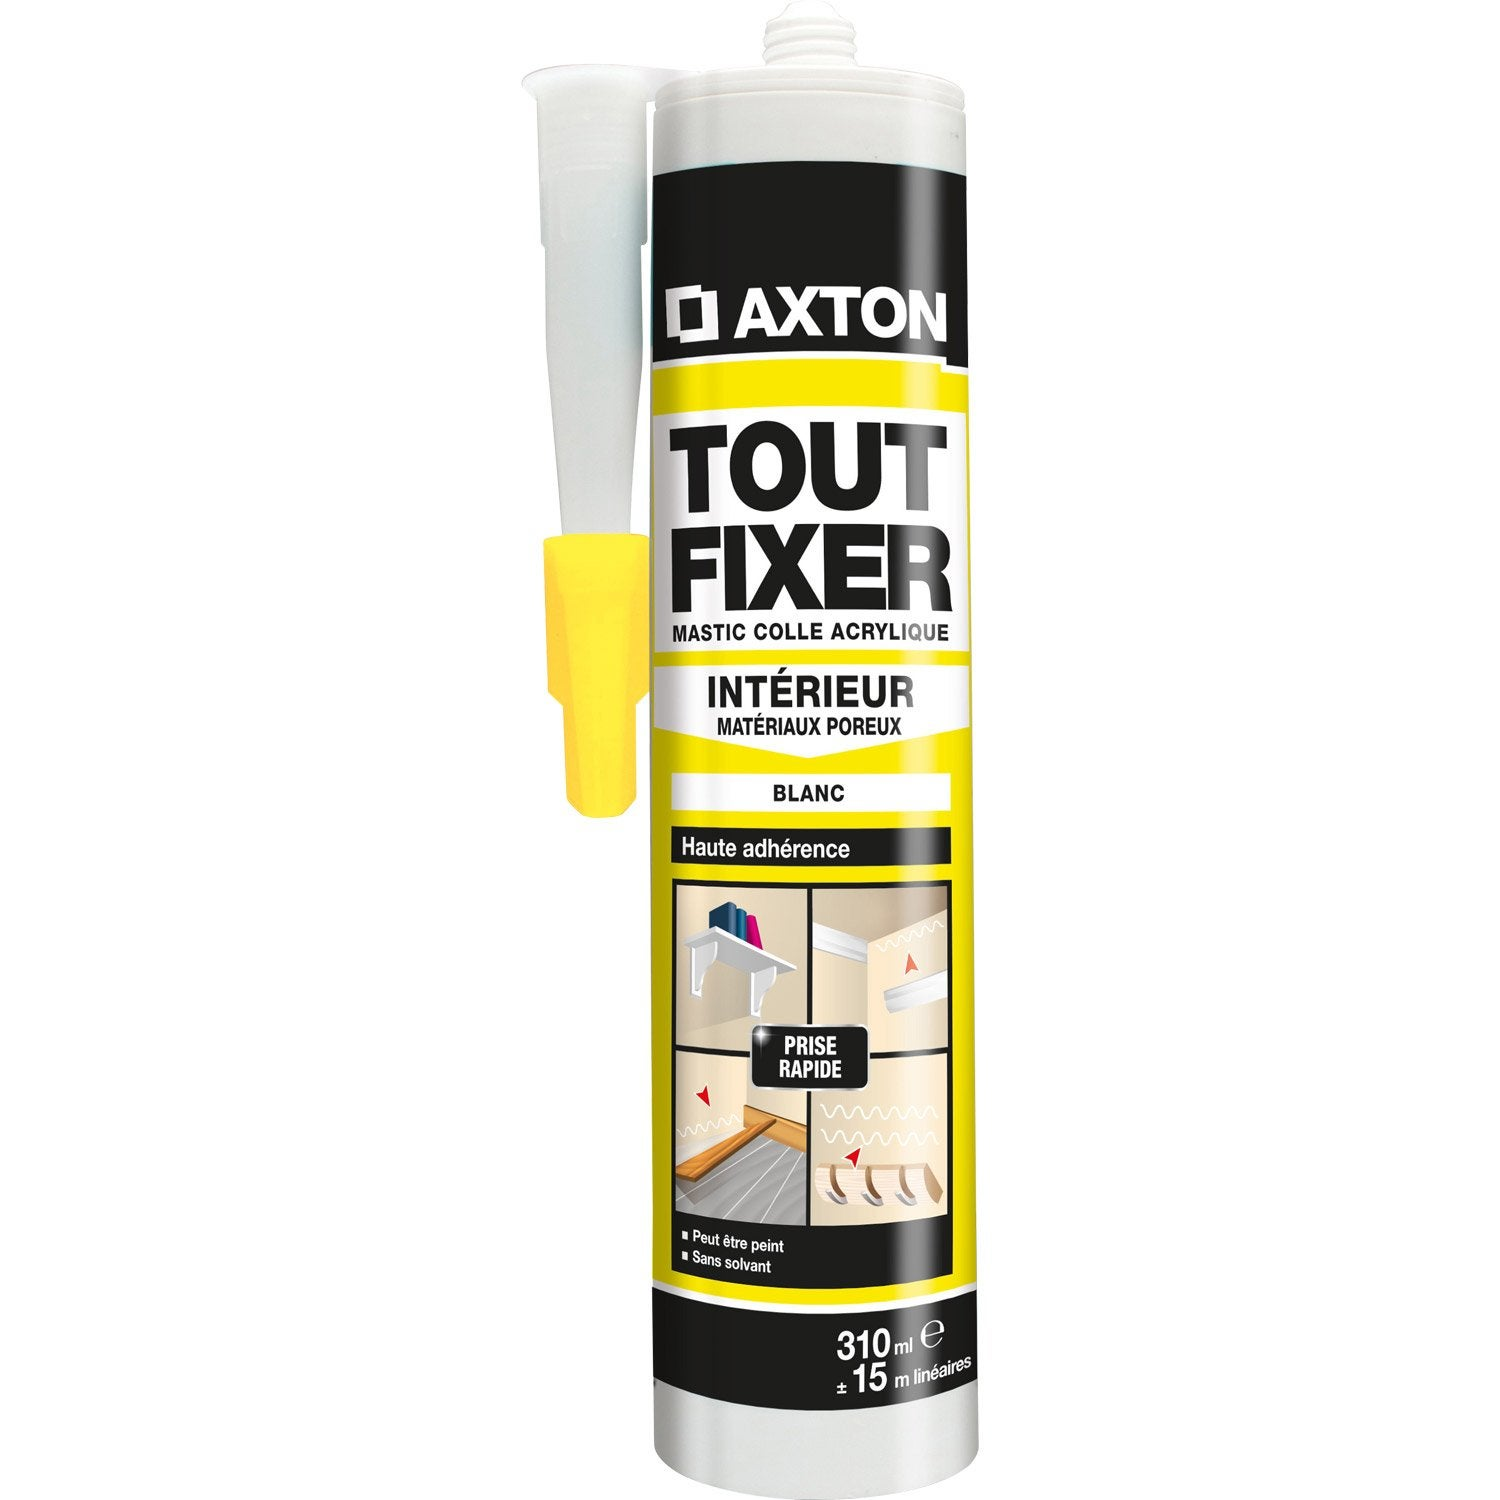 Colle mastic tout fixer axton 310 ml leroy merlin - Colle carrelage exterieur leroy merlin ...